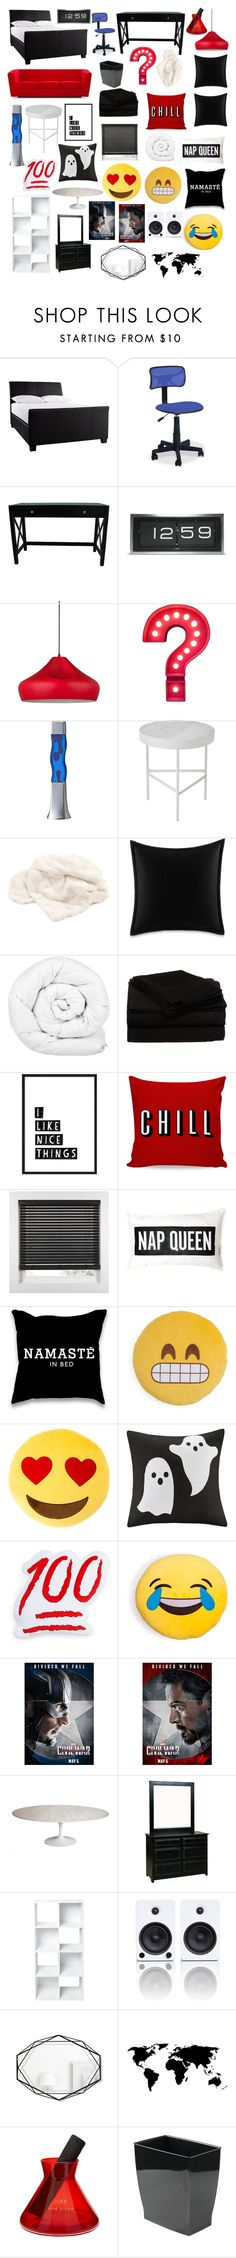 """""""C Bedroom"""" by ajd2 ❤ liked on Polyvore featuring interior, interiors, interior design, home, home decor, interior decorating, Linon, LEFF Amsterdam, Dot & Bo and Room Essentials"""